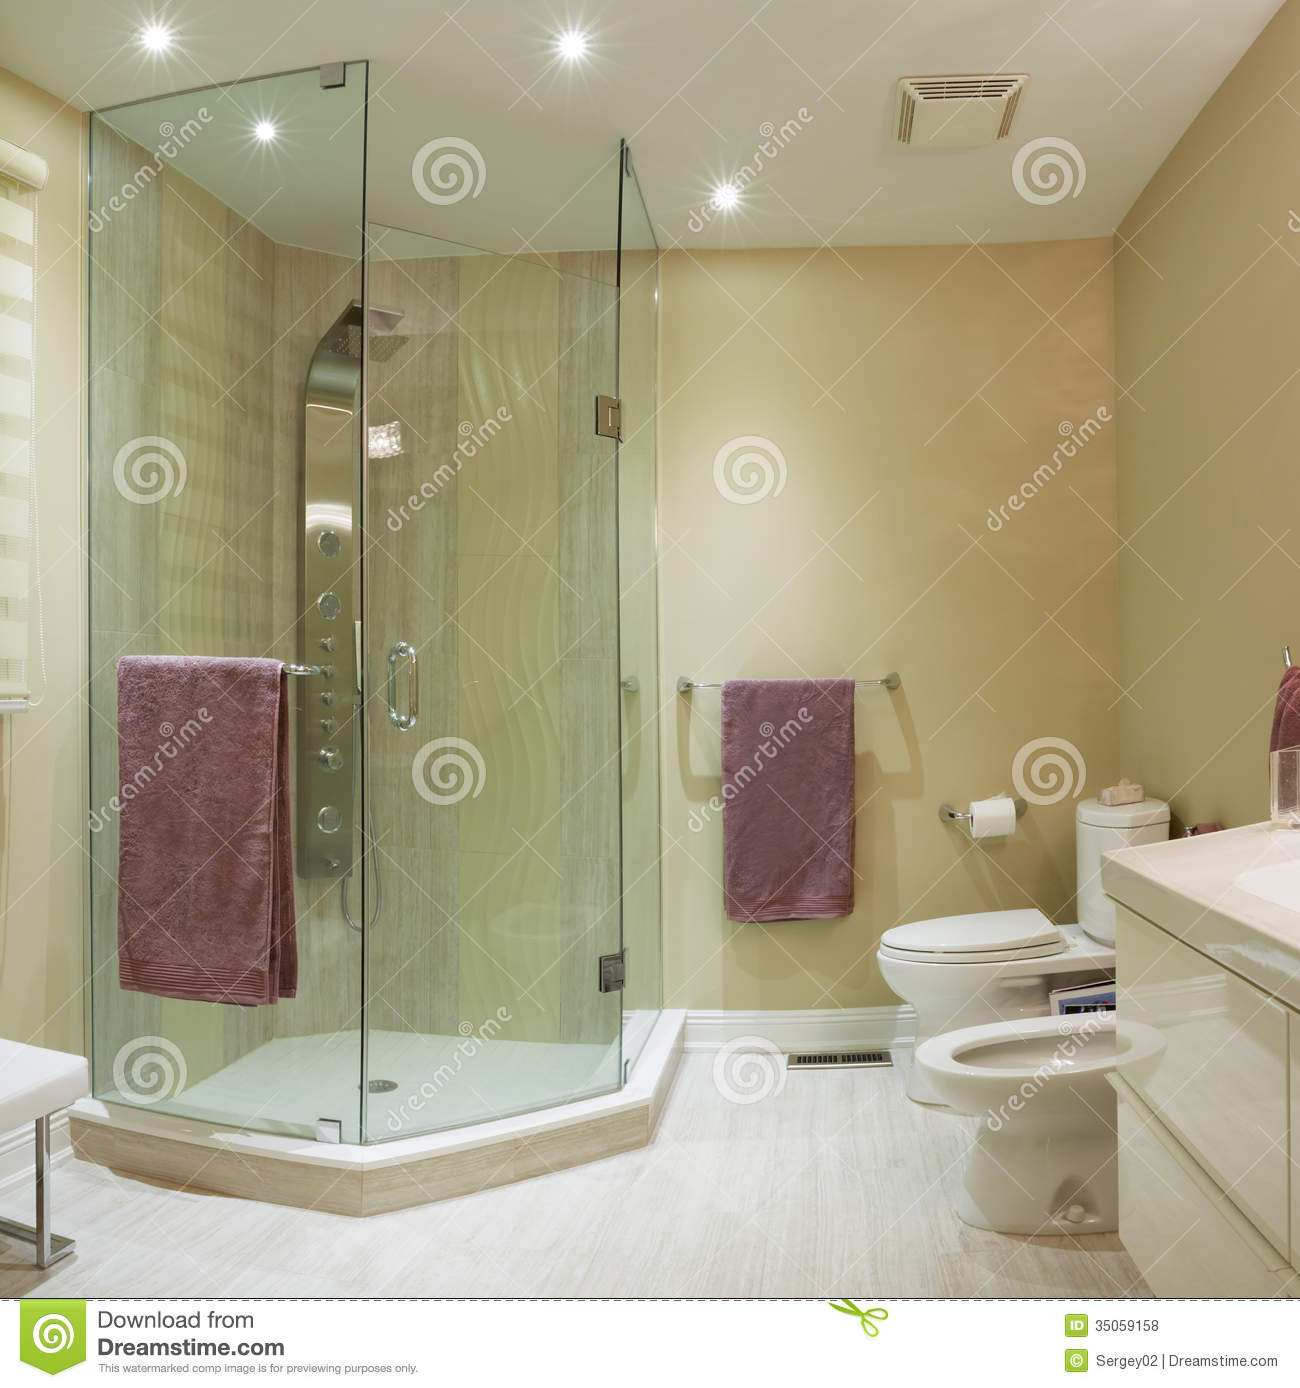 Interior design royalty free stock photos image 35059158 for Bathroom inside design